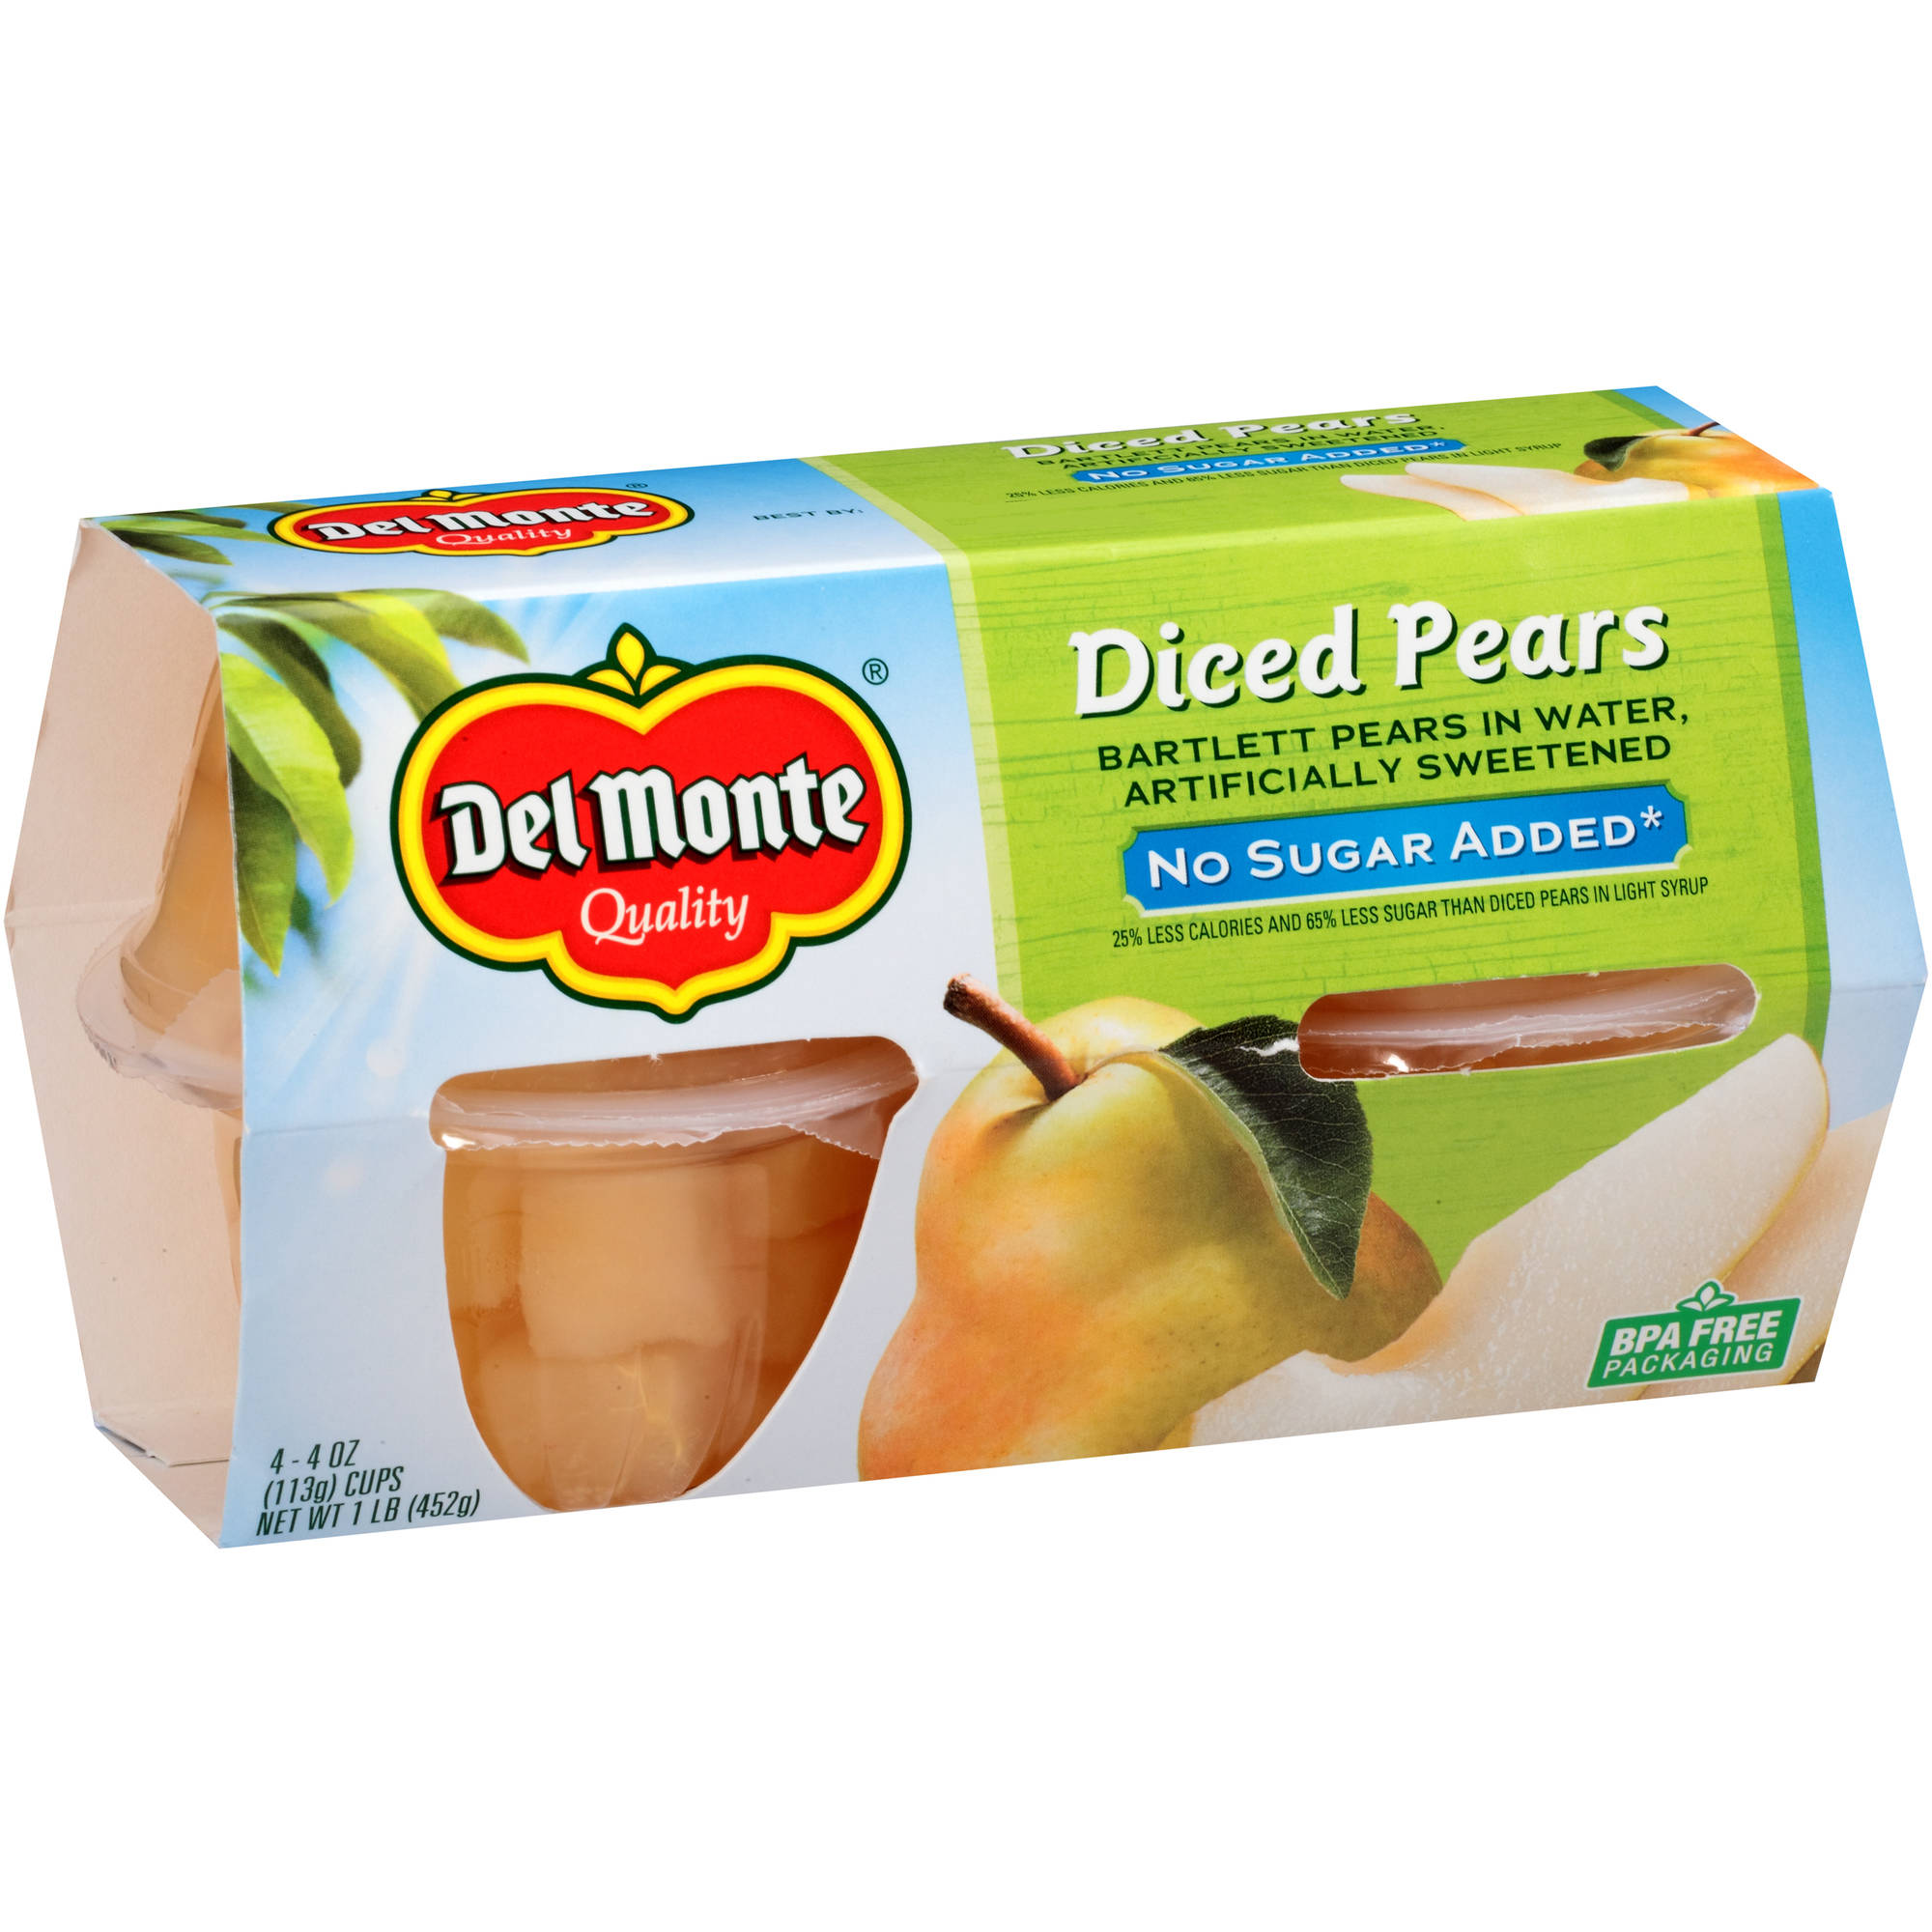 Del Monte No Sugar Added Diced Pears Bartlett Pears in Water, 4 oz, 4 count